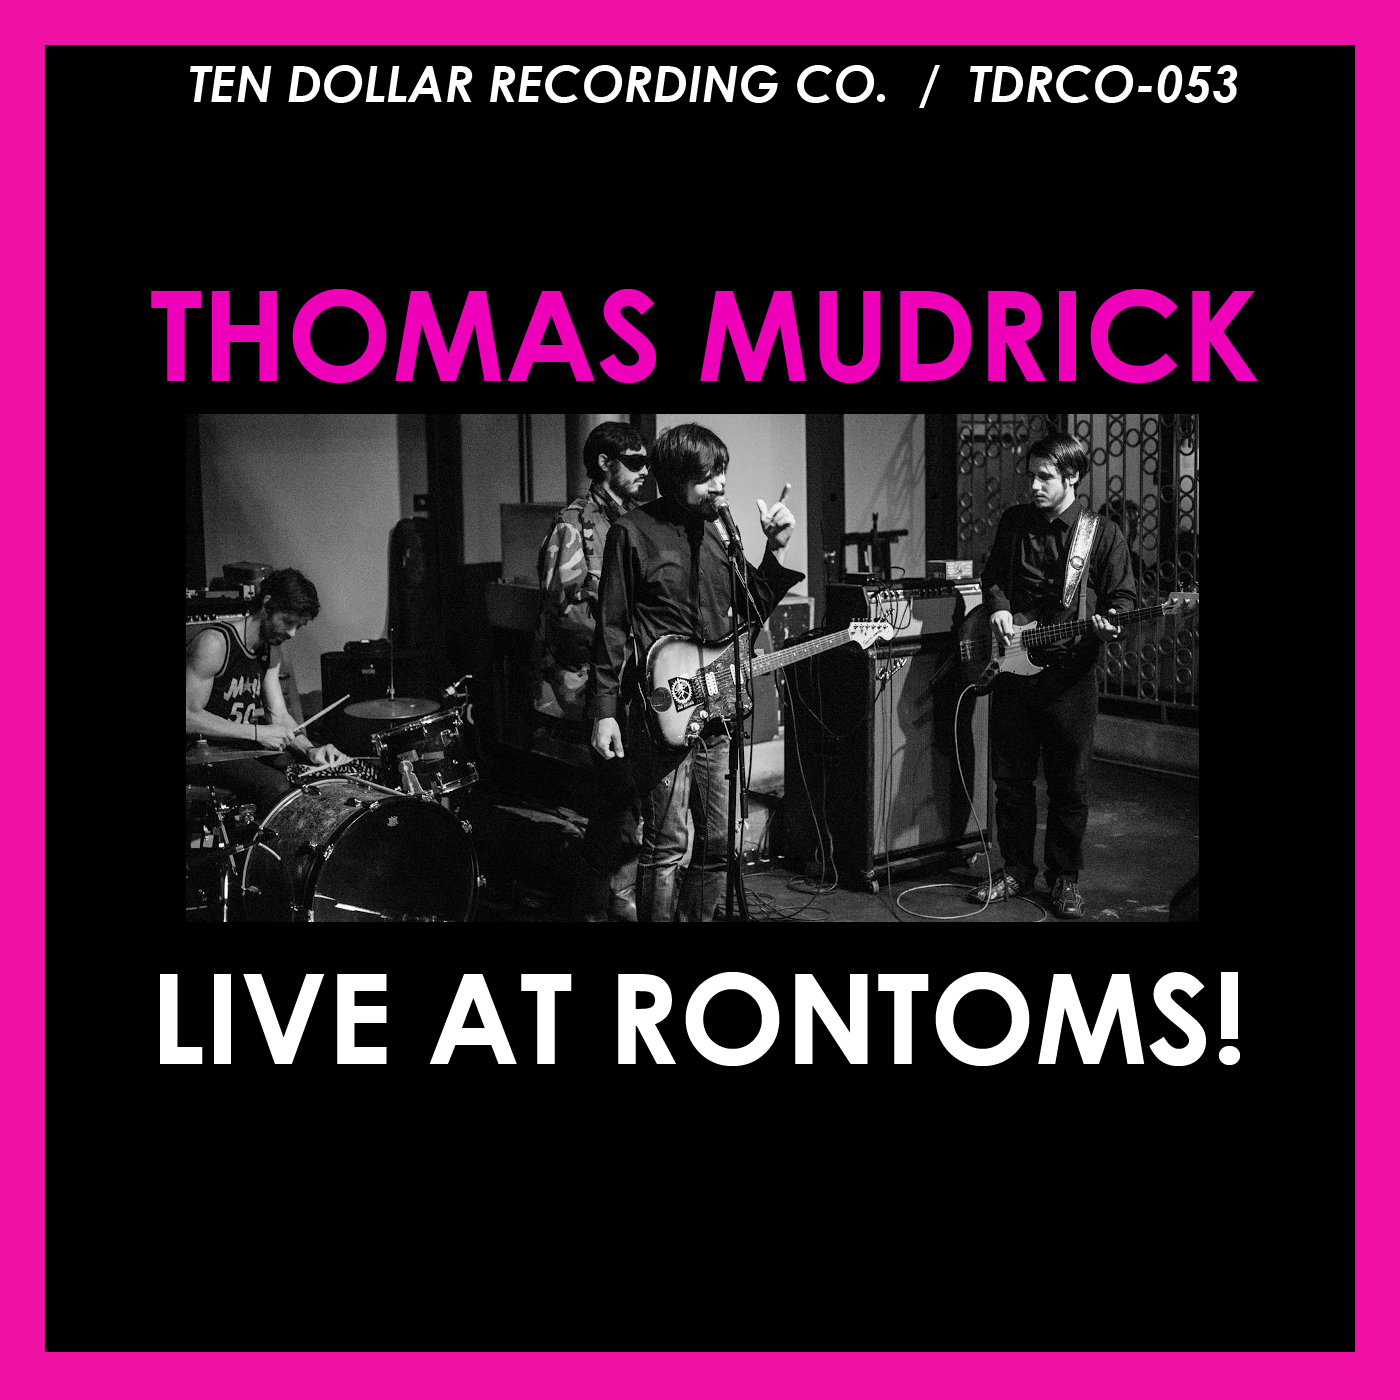 Thomas Mudrick - Live at Rontoms!